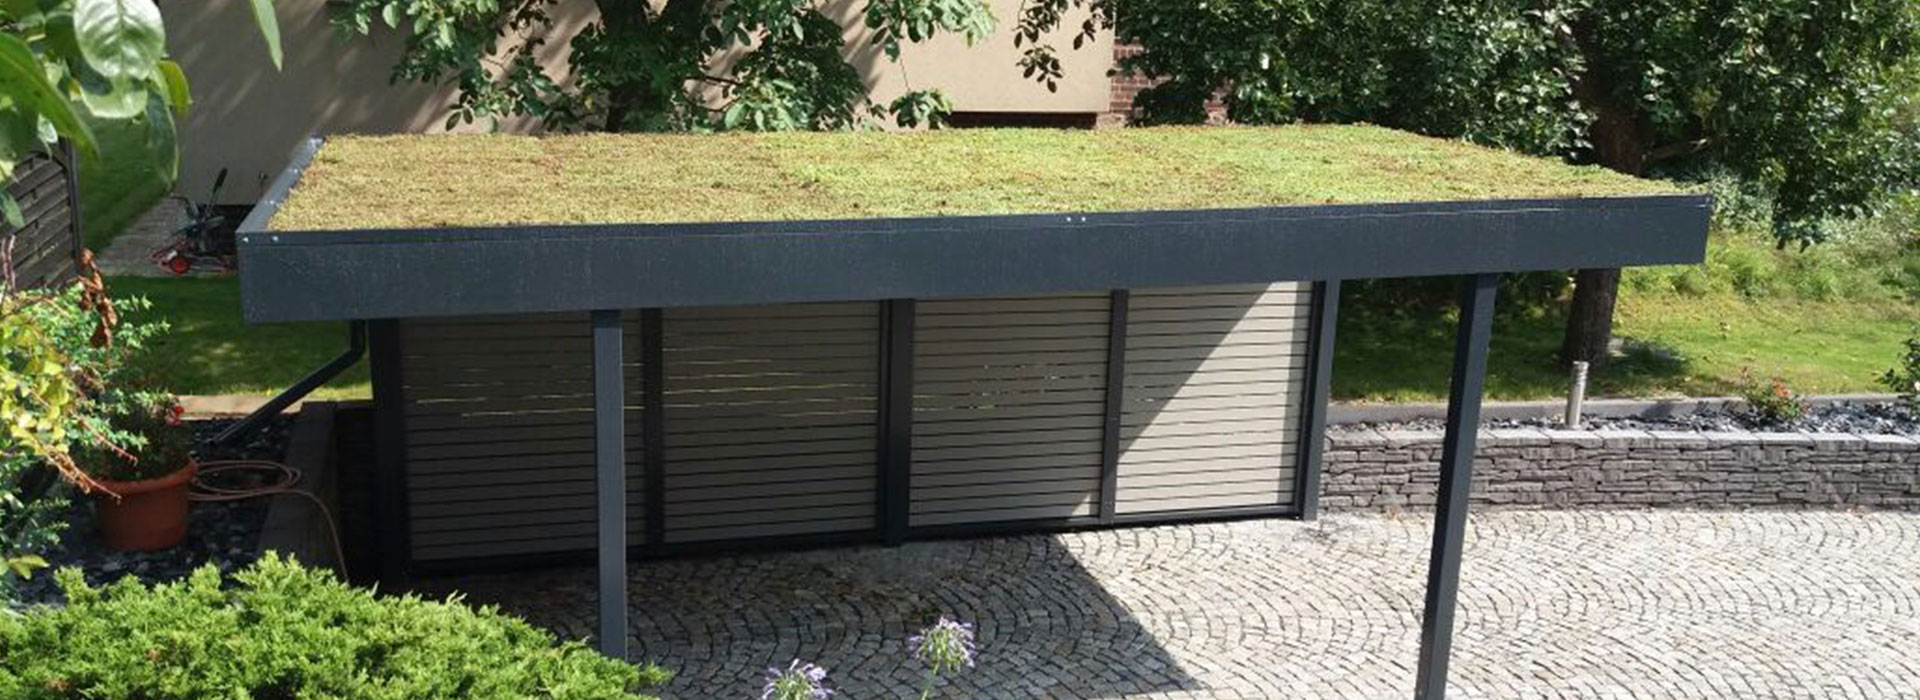 carport bauplan bauen mit dem carport doppelcarport planer. Black Bedroom Furniture Sets. Home Design Ideas